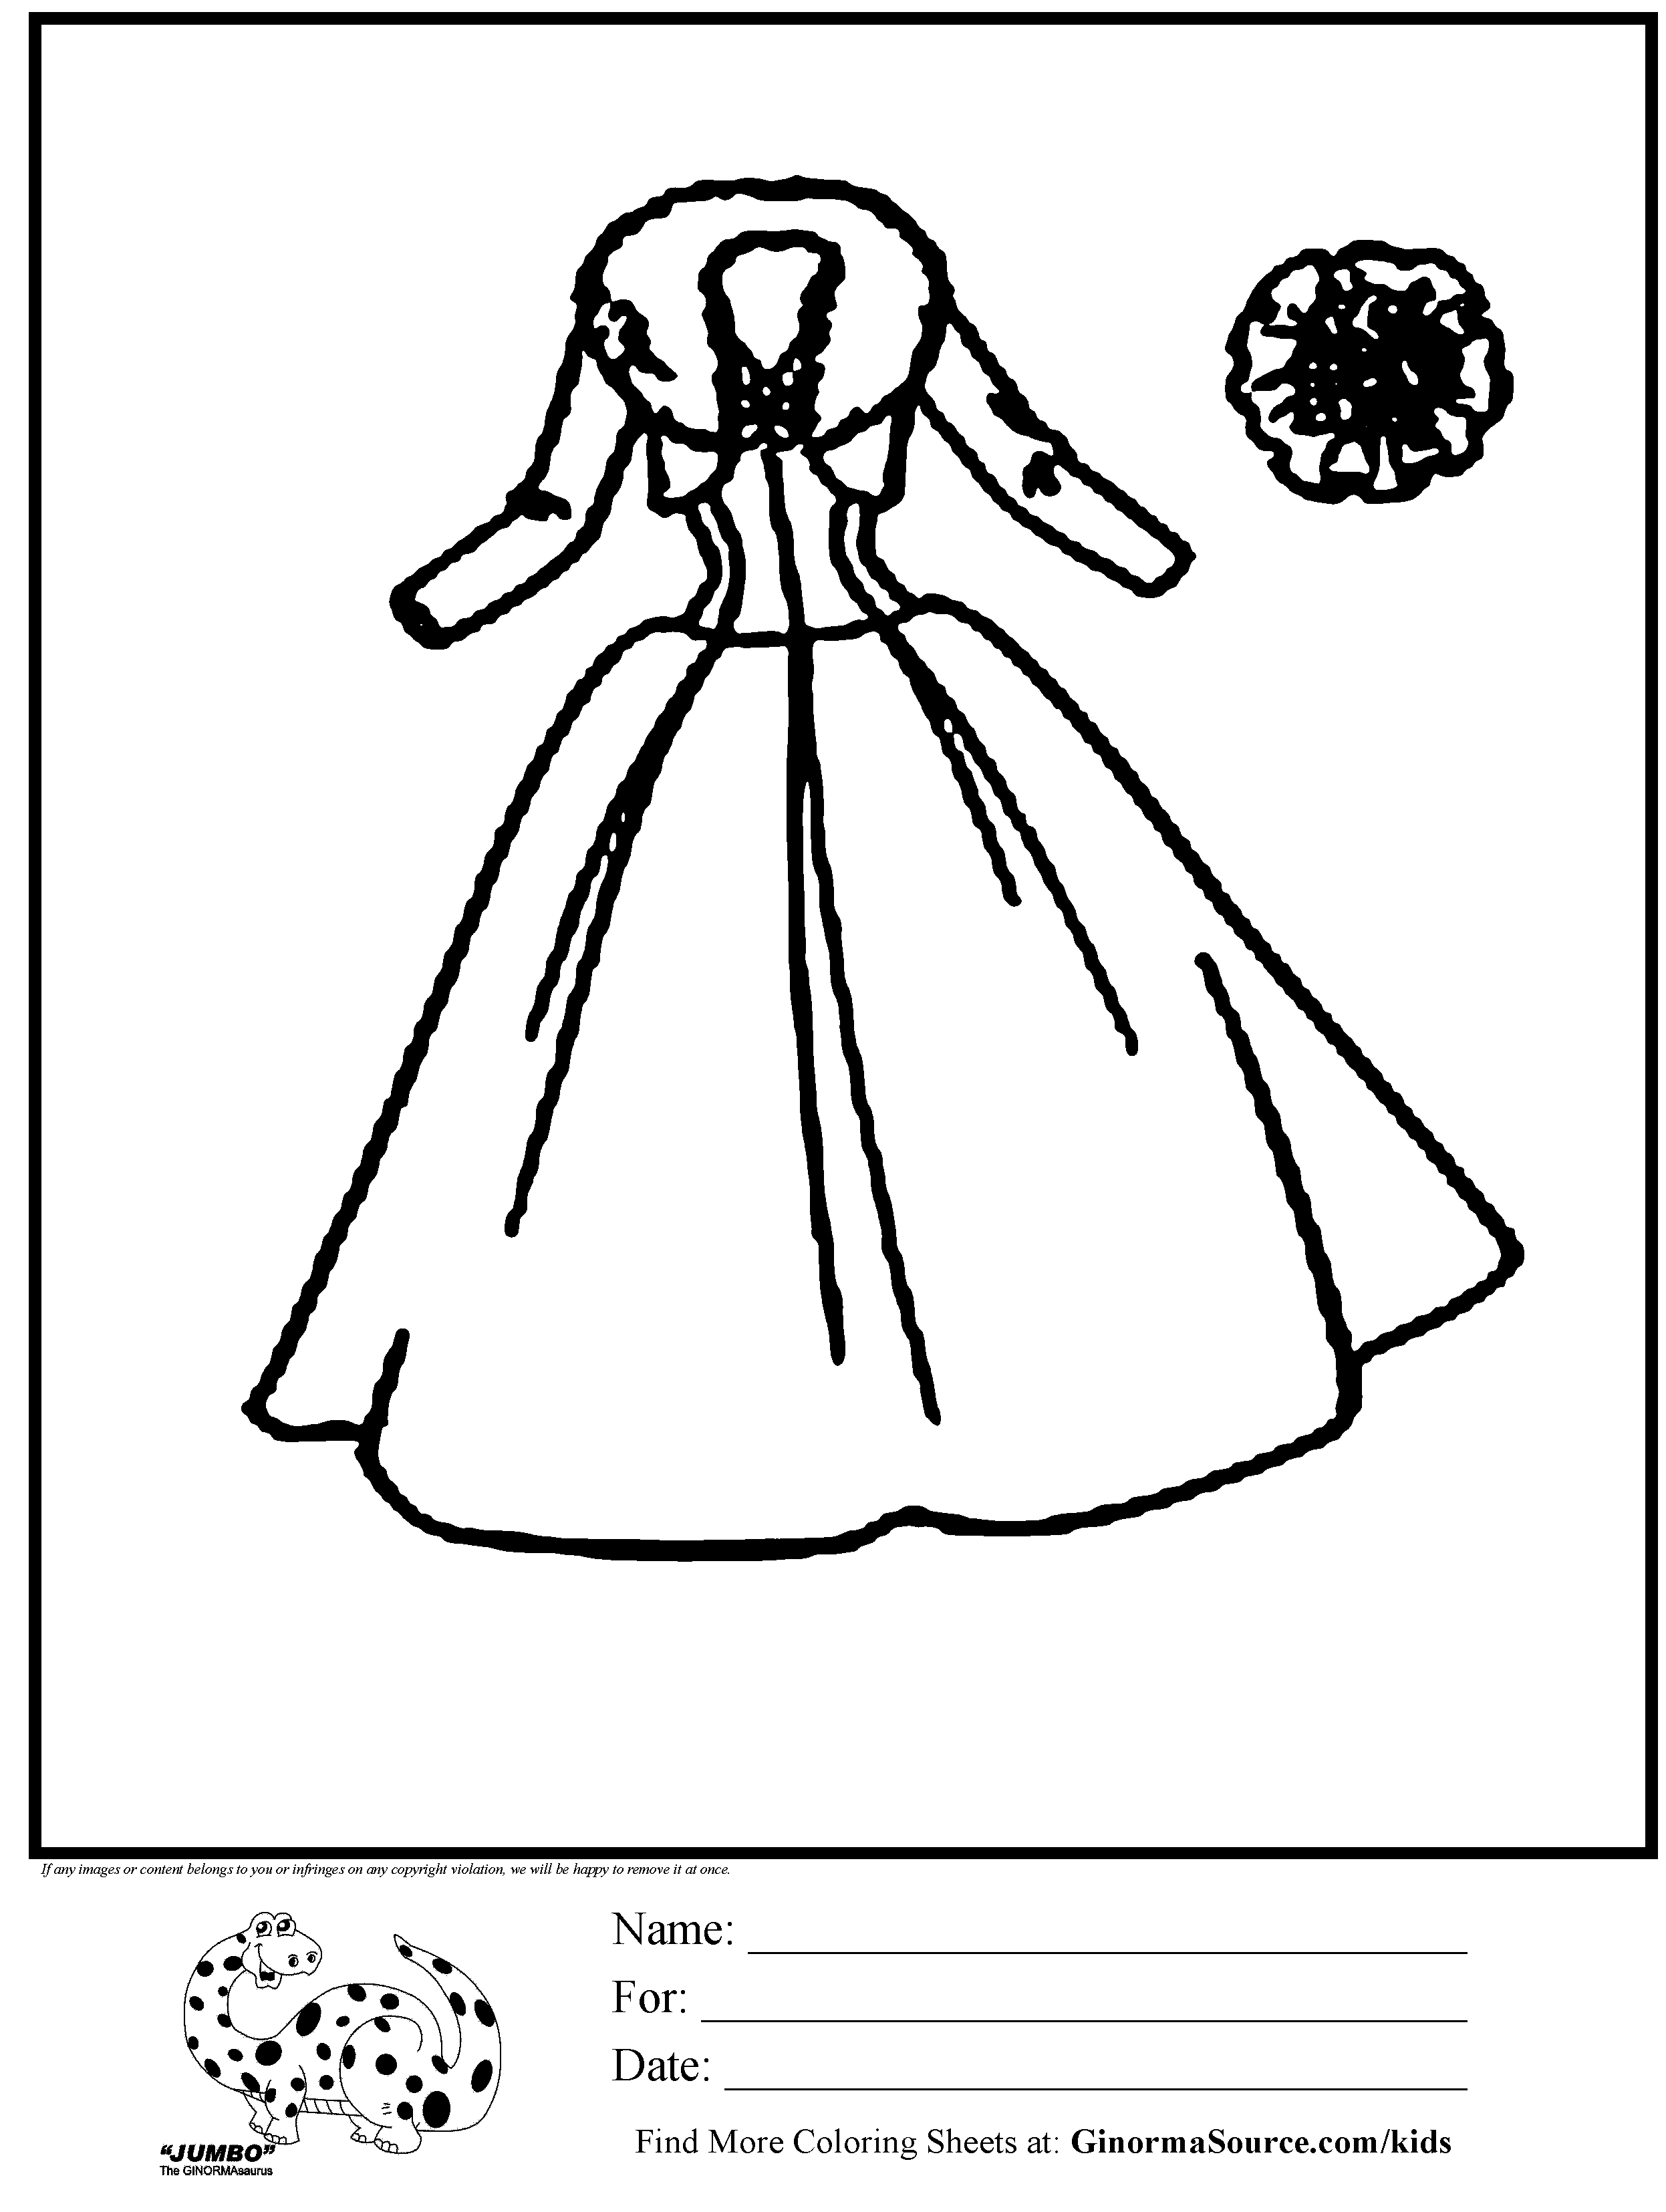 coloring pages dress - photo#14